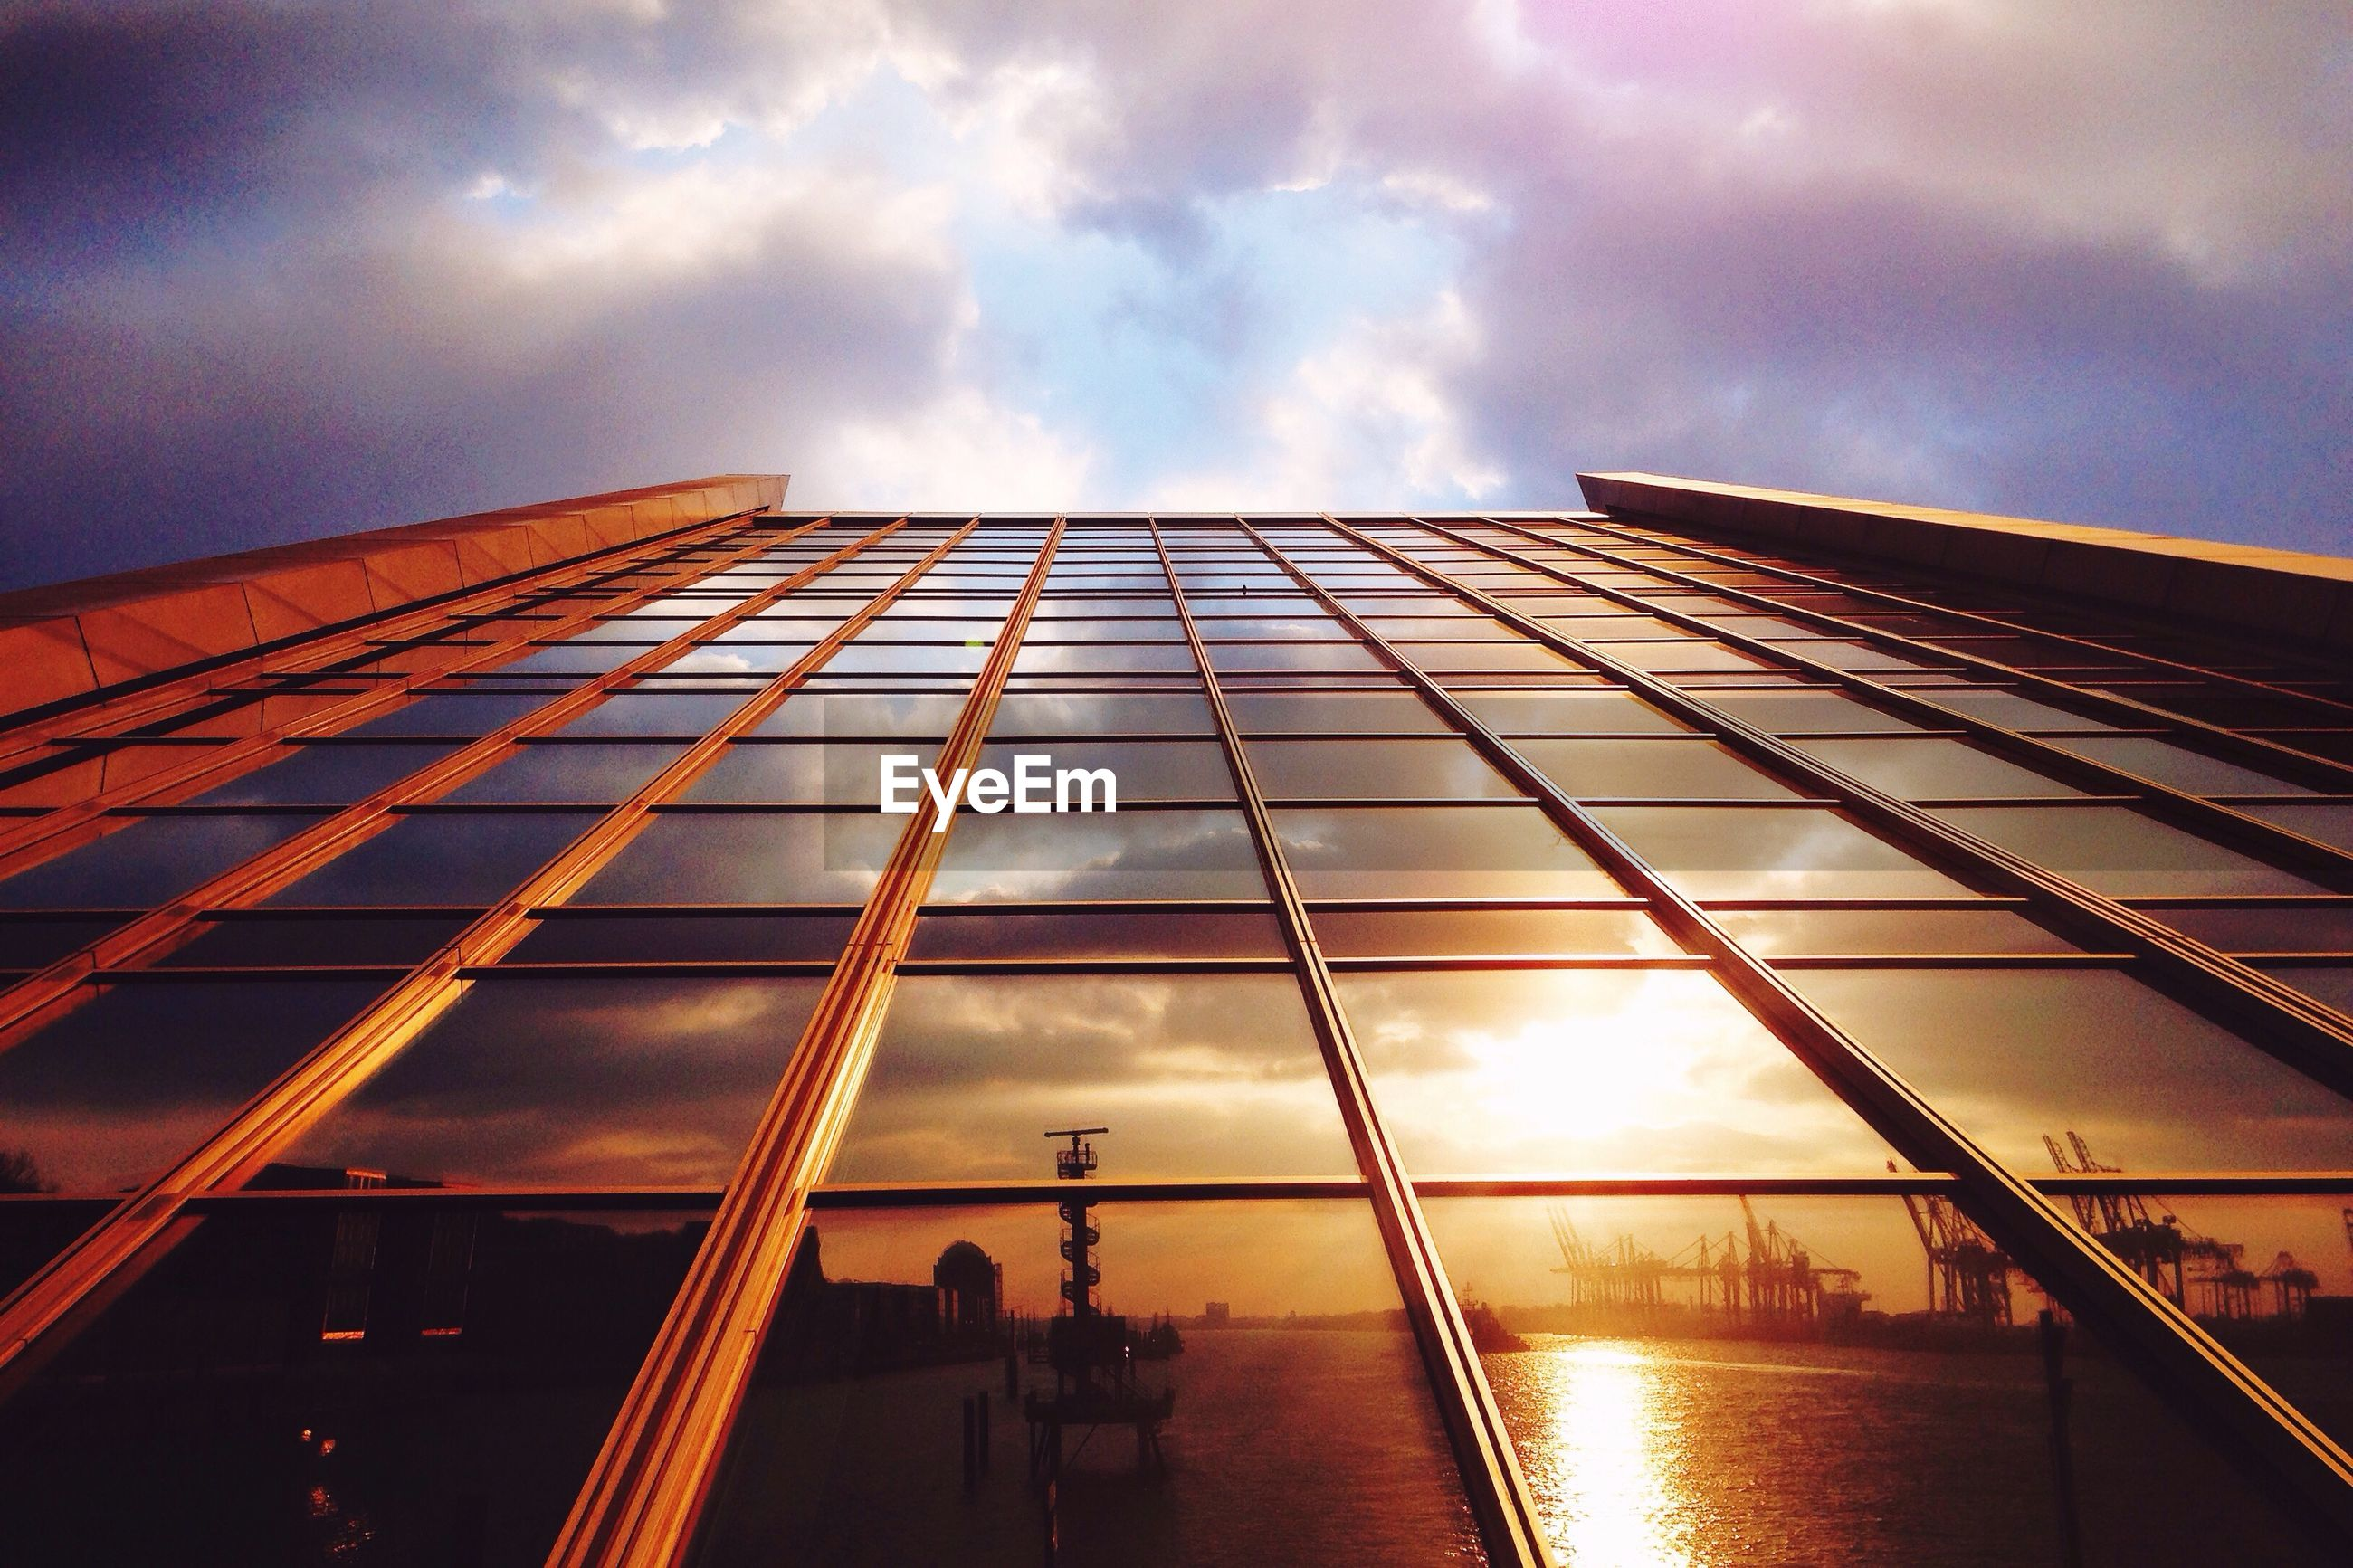 Reflection of sea and cloudy sky on glass building during sunset